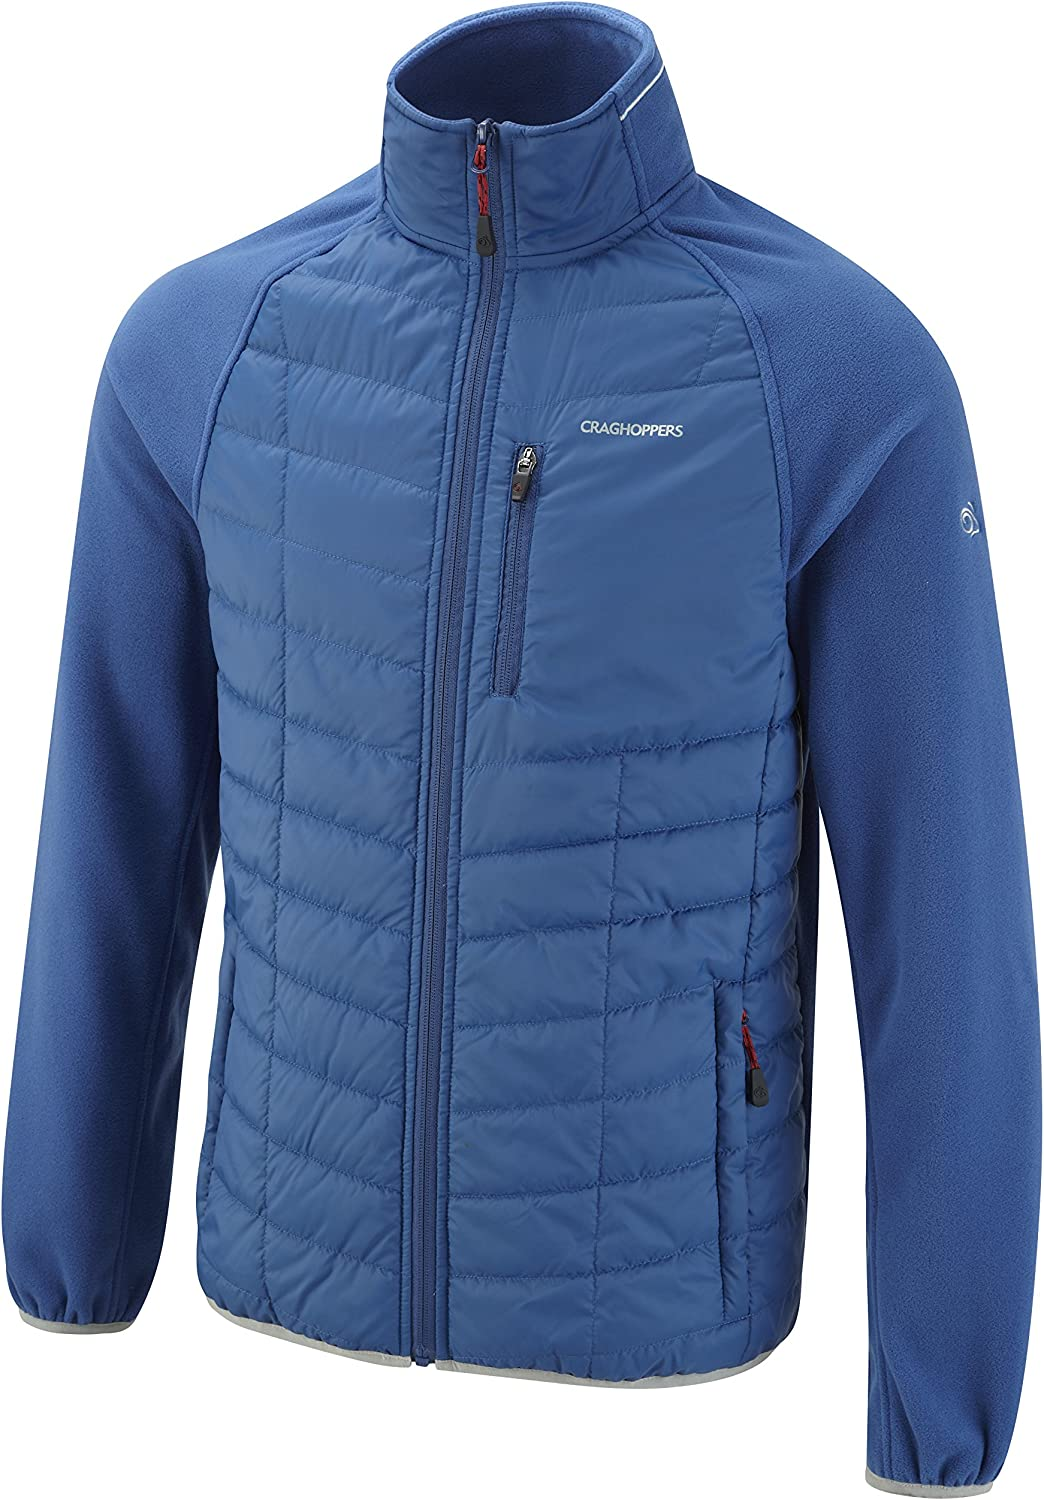 Craghoppers Men's Easby Jacket